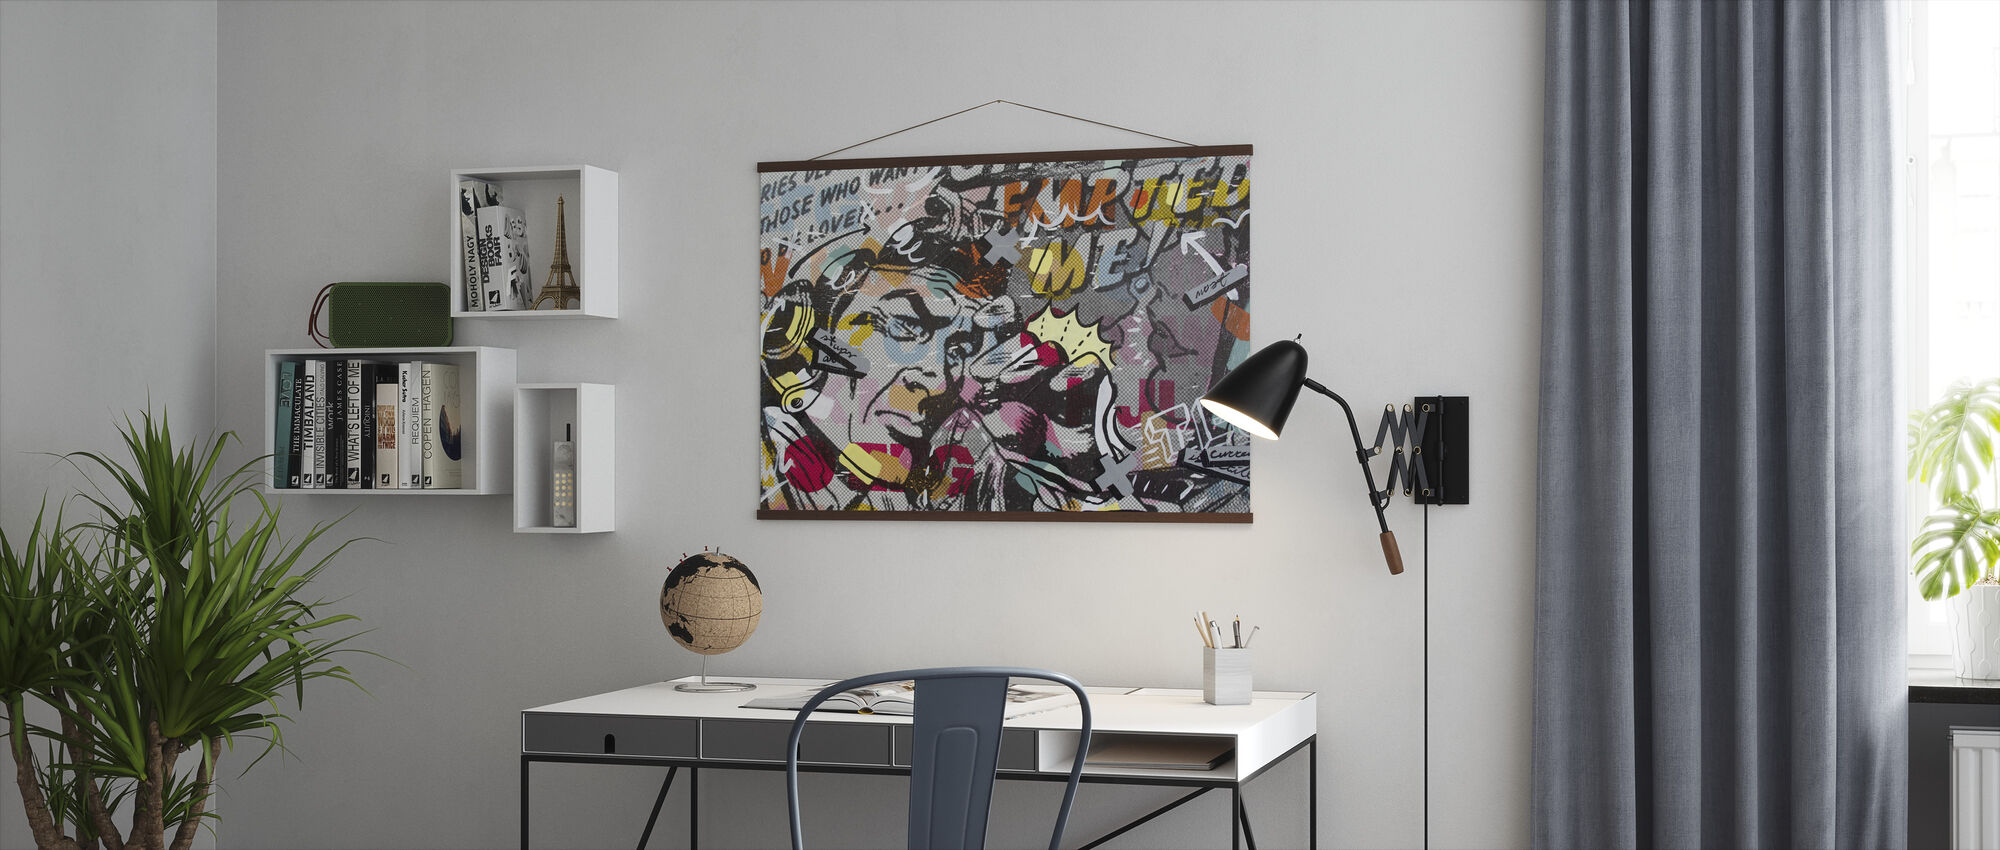 Mimosas - Poster - Office